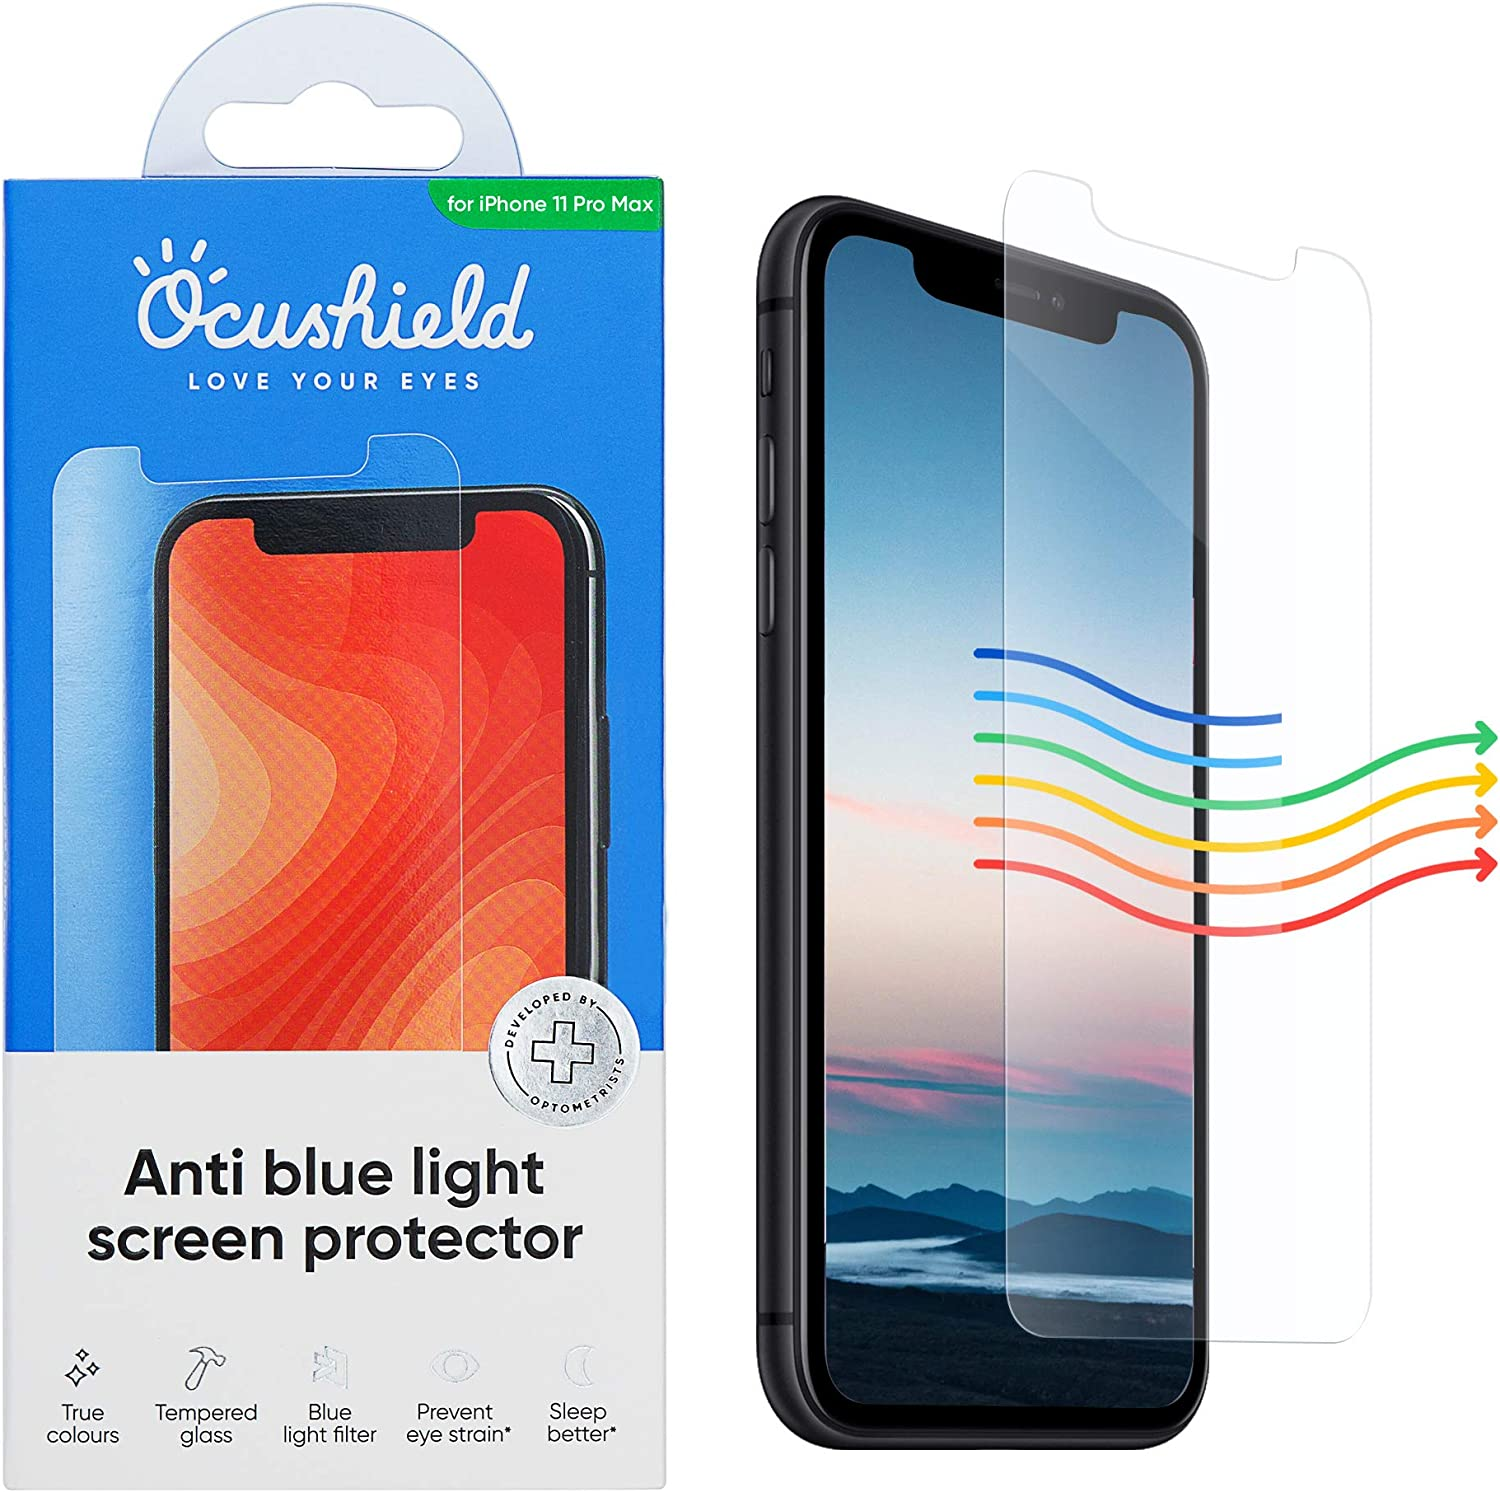 Ocushield Anti Blue Light, Tempered Glass Screen Protector for iPhone 11 Pro Max/XS Max - Protect Your Eyes & Improve Sleep